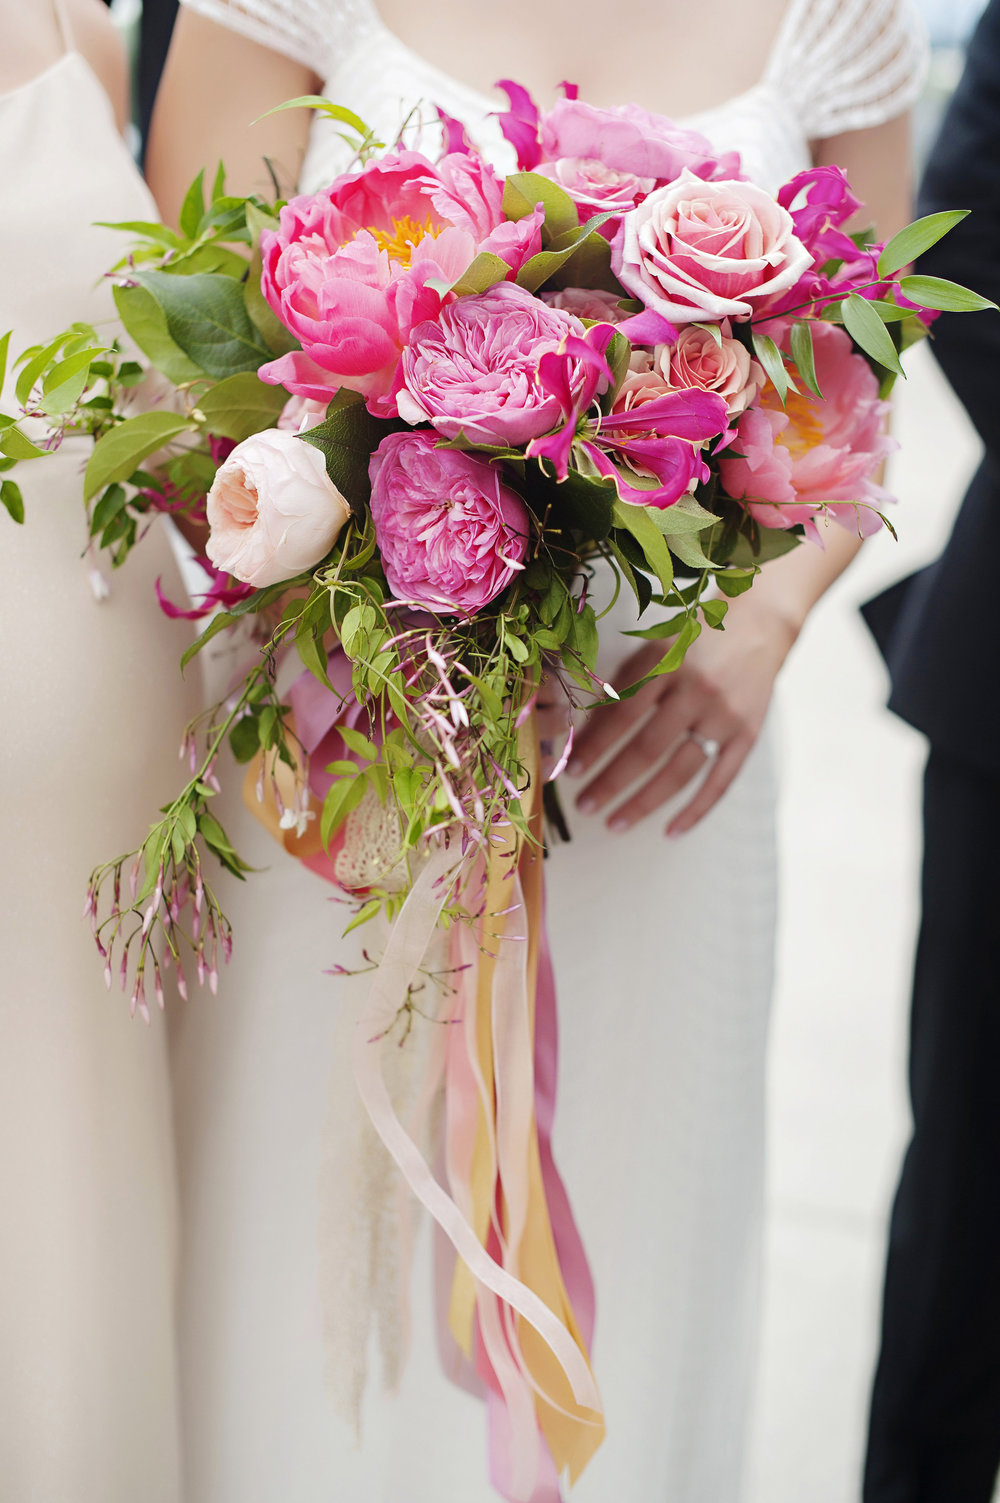 Vibrant and Colorful Bride Bouquet at Hilton Netherlands Plaza